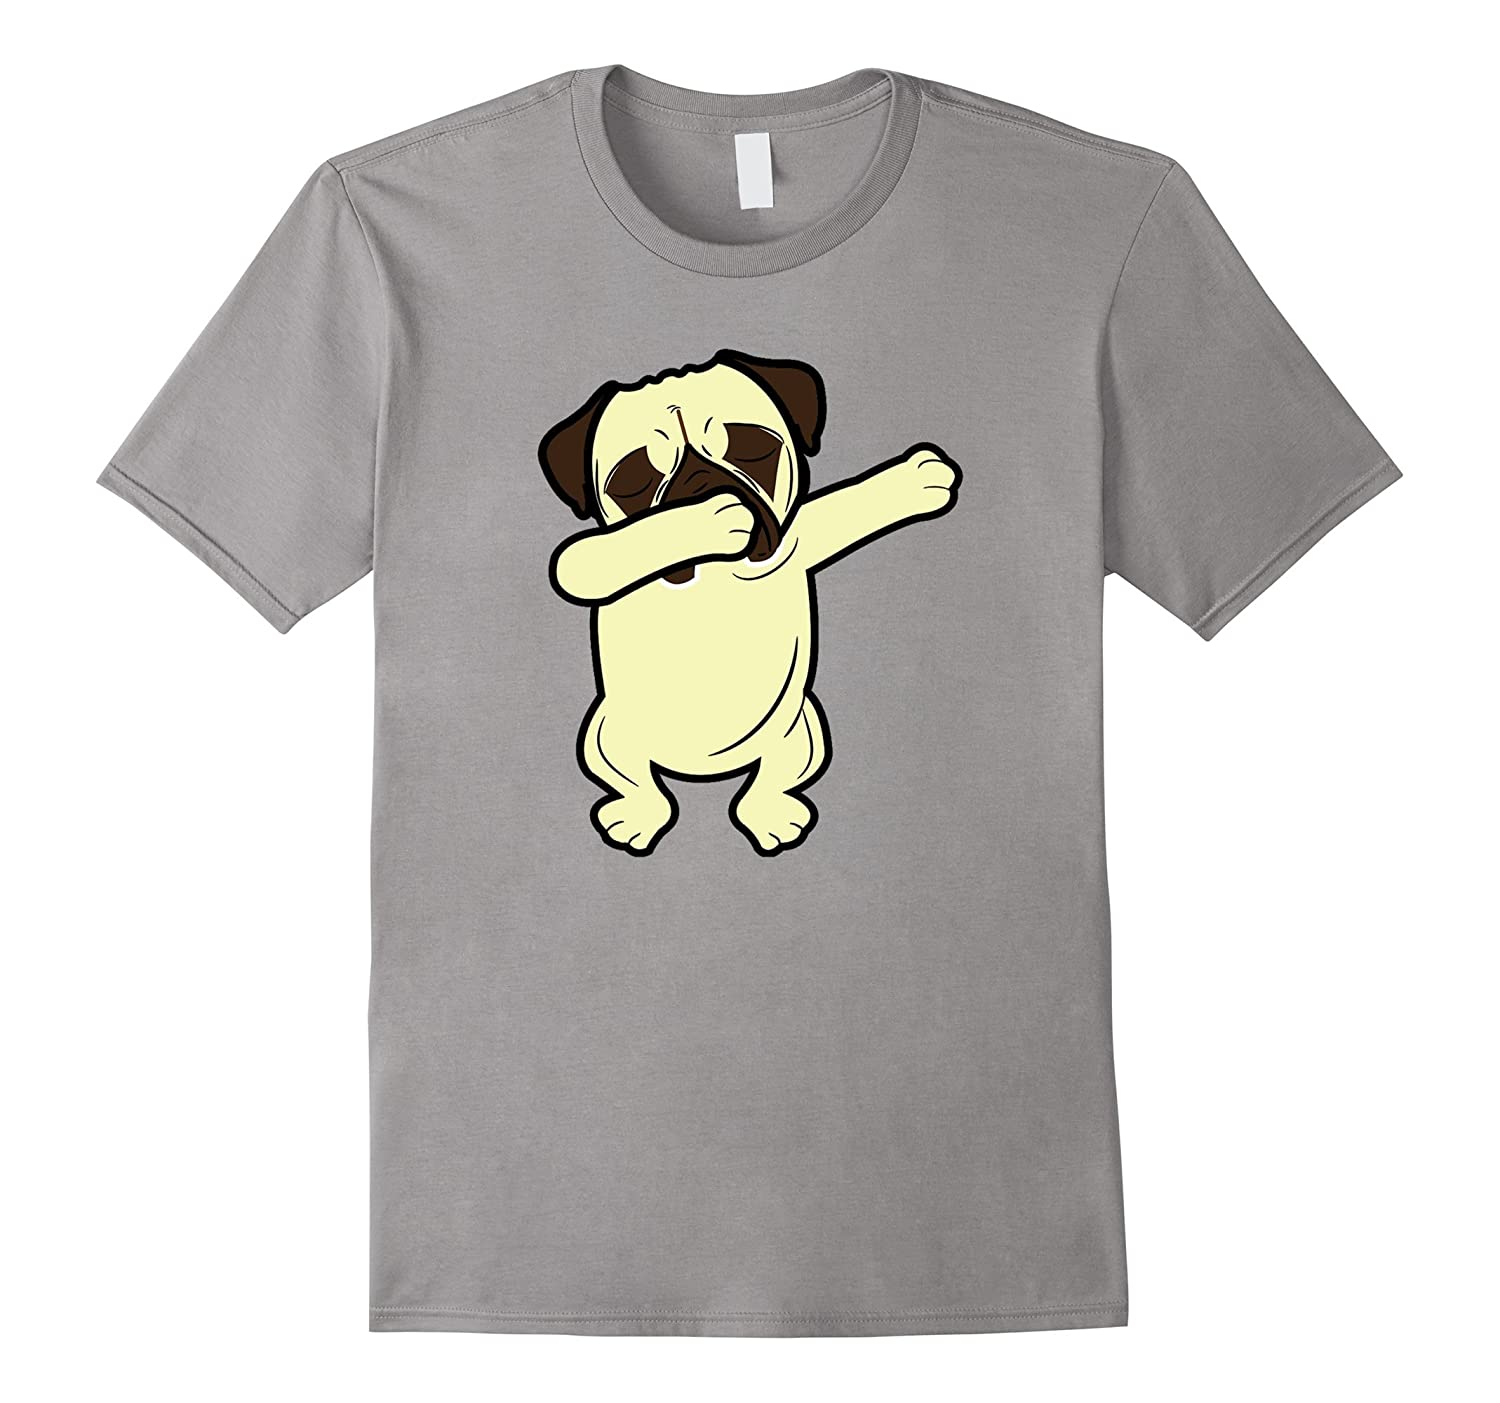 T shirt design hip hop - Dabbing Pug Funny Shirt Dab Dog Hip Hop T Shirt Best Design T